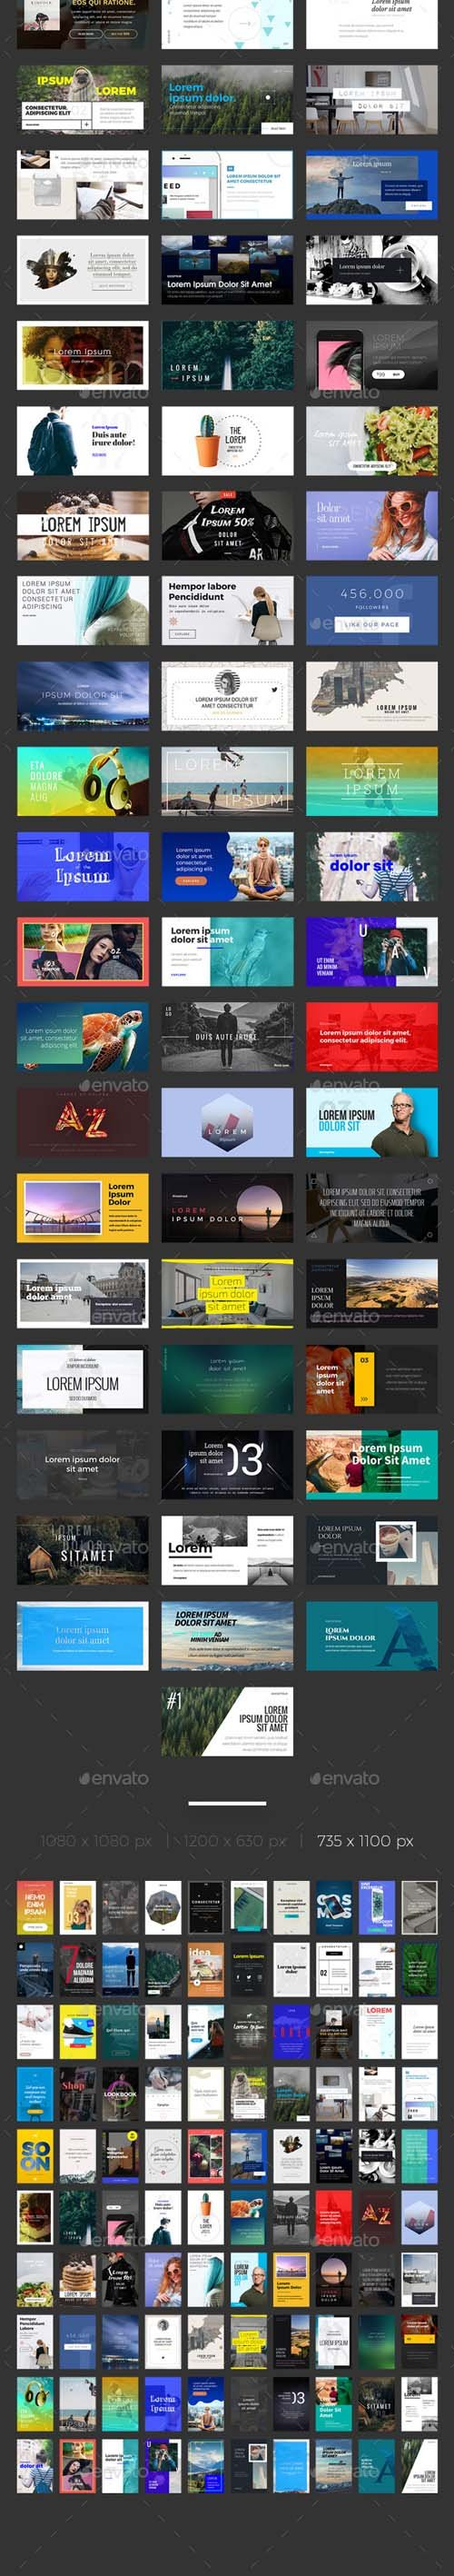 GR - ALIUM Social Media Pack FULL 19727784